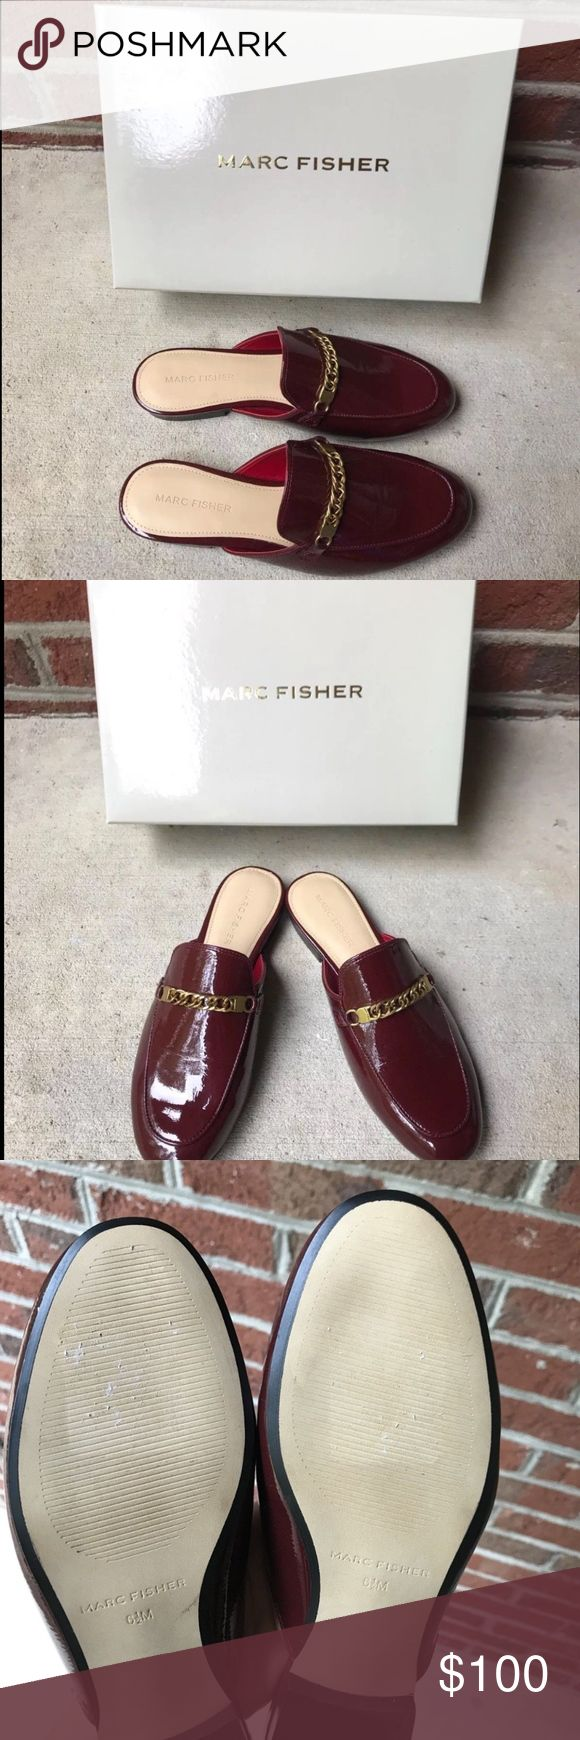 "Marc Fisher Whiley Women's Mule Burgundy SZ 6.5 New no box  Never worn   Bottom of shoe had a tag that was removed at store. Please let me know if you have any questions.  A must-have this season is the Whiley women's mule by Marc Fisher. Its patent upper and chain-link hardware accent make this mule a perfect match for your favorite outfit.  •	Patent upper  •	Metal hardware accent  •	Slip-on entry  •	Heel height: ¼""  SKU- 0191408144370 Marc Fisher Shoes Mules & Clogs"